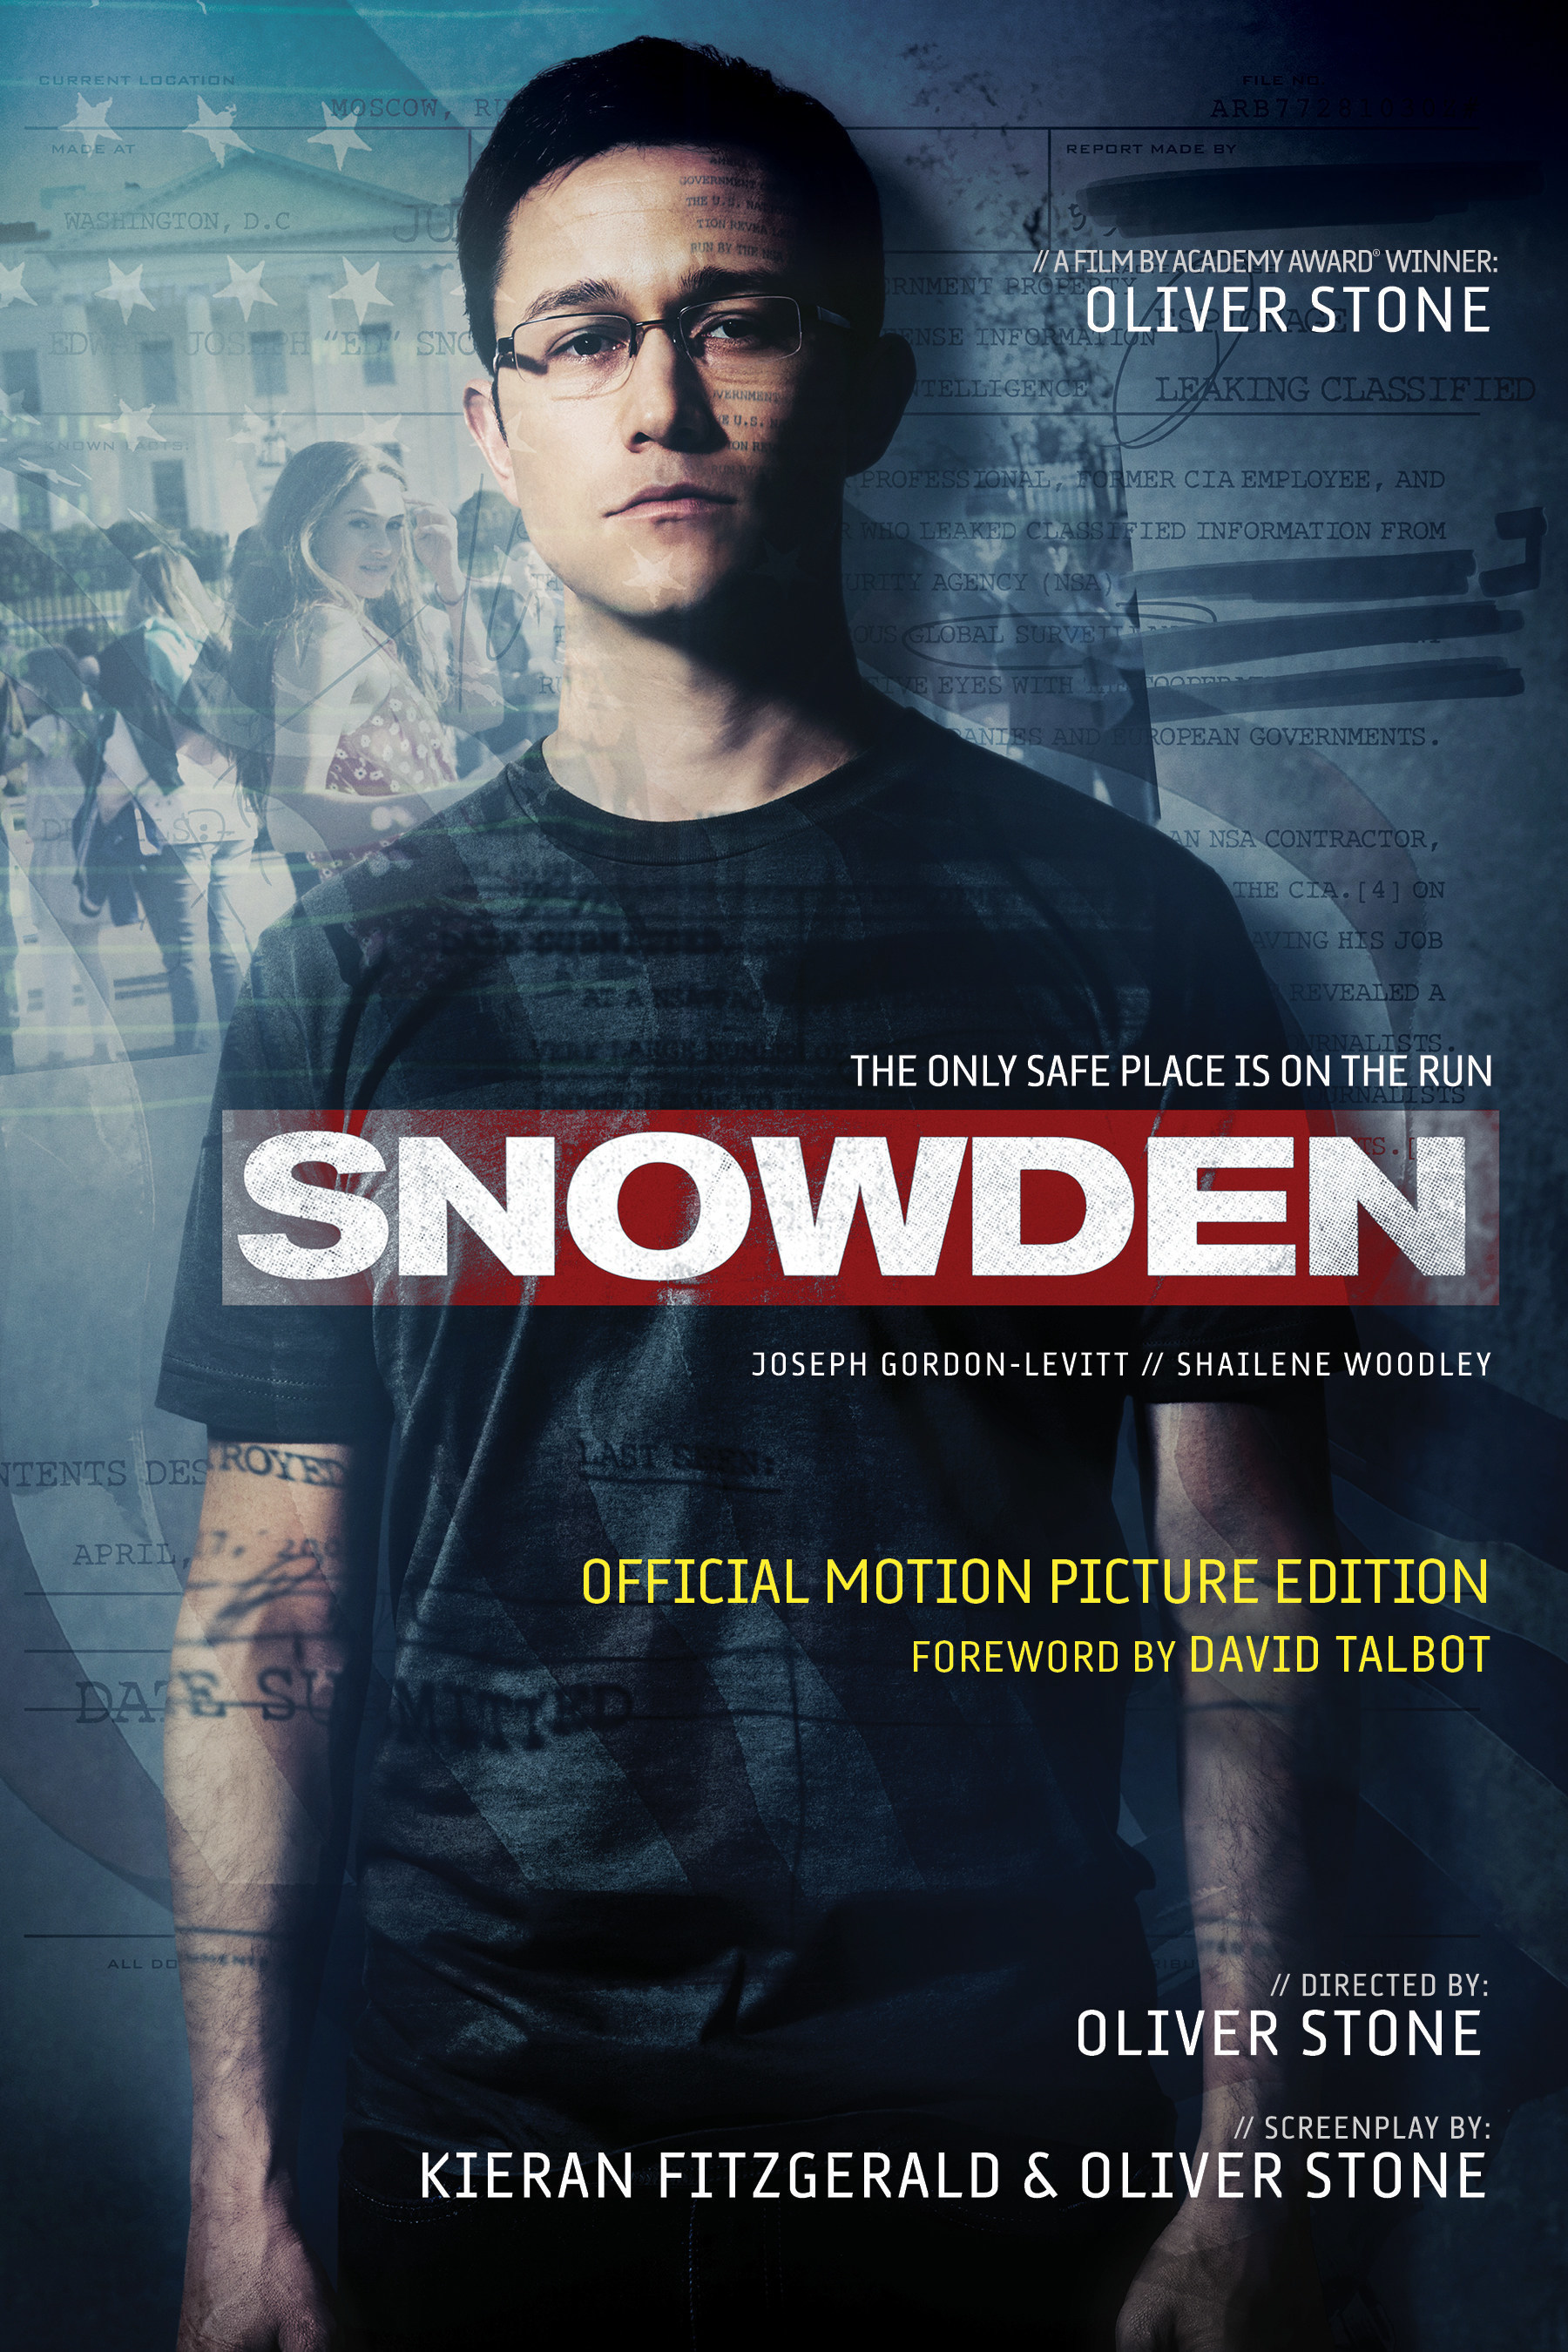 Skyhorse Publishes Official Motion Picture Tie-In book to Oliver Stone's New Movie, SNOWDEN